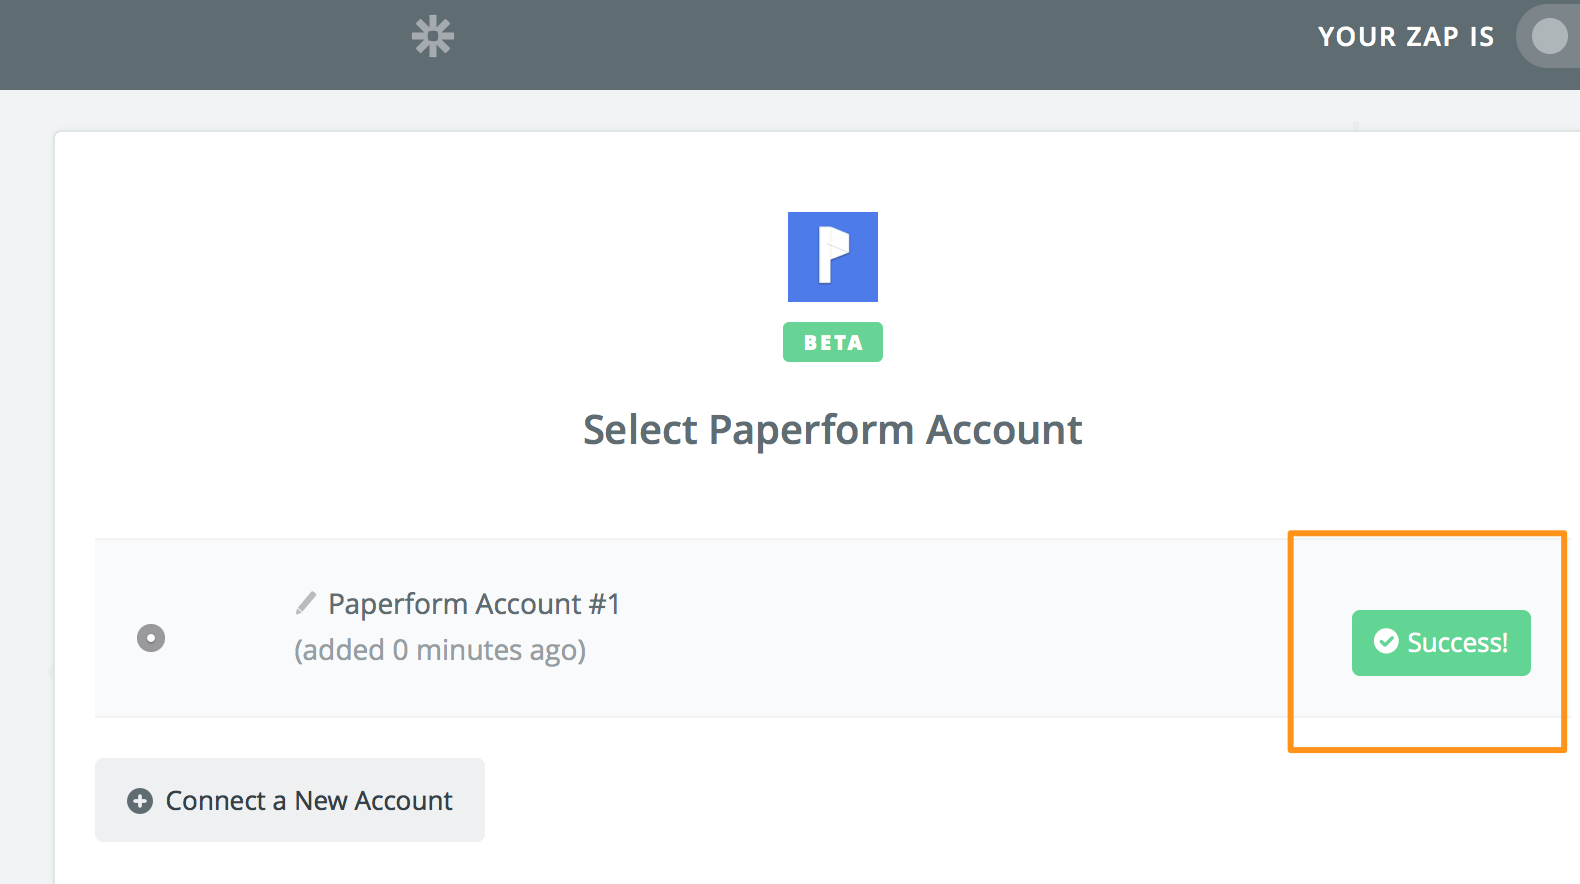 Paperform account added